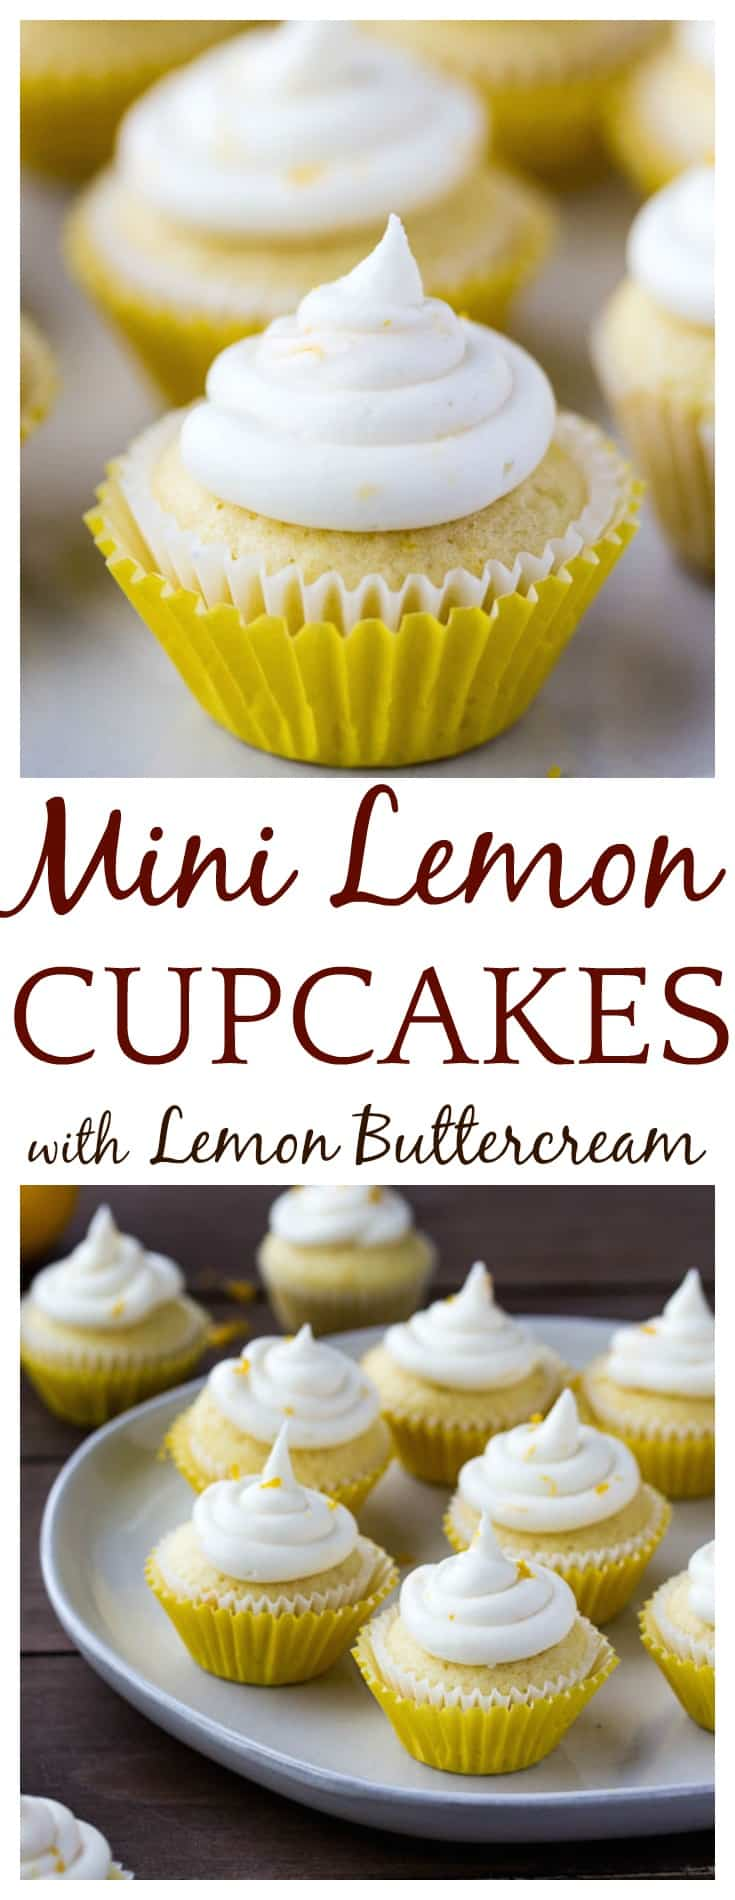 These 2 bite Mini Lemon Cupcakes with Lemon Buttercream Frosting are small, but pack a fresh lemony punch! They are perfect for summer and spring! | #lemoncupcakes #cupcakes #cupcakesrecipe #easyrecipe #dessert #dlbrecipes | fresh lemon cupcakes